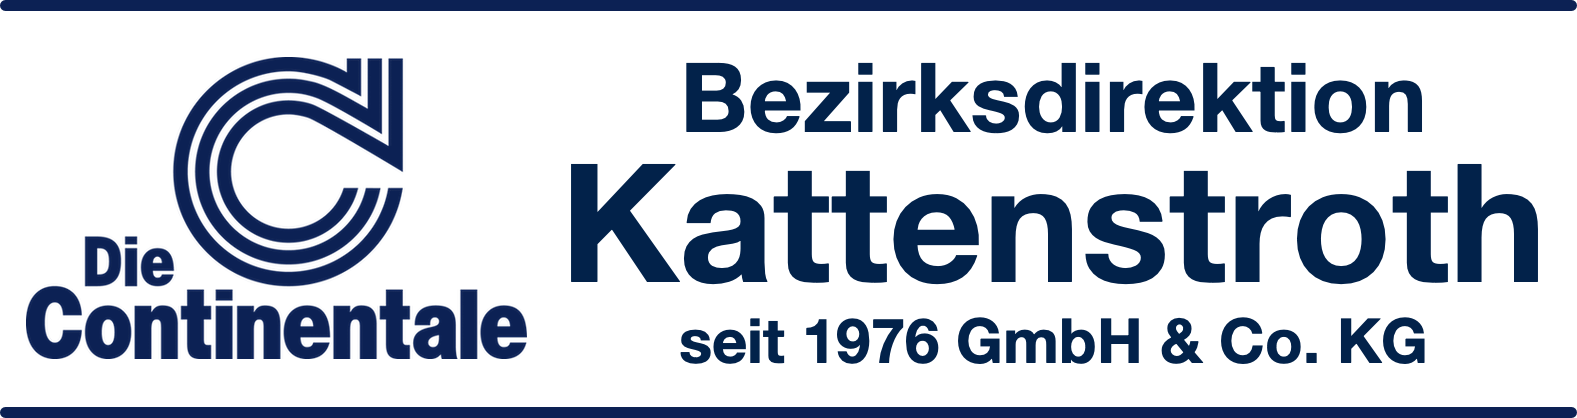 Kattenstroth seit 1976 GmbH & Co. KG